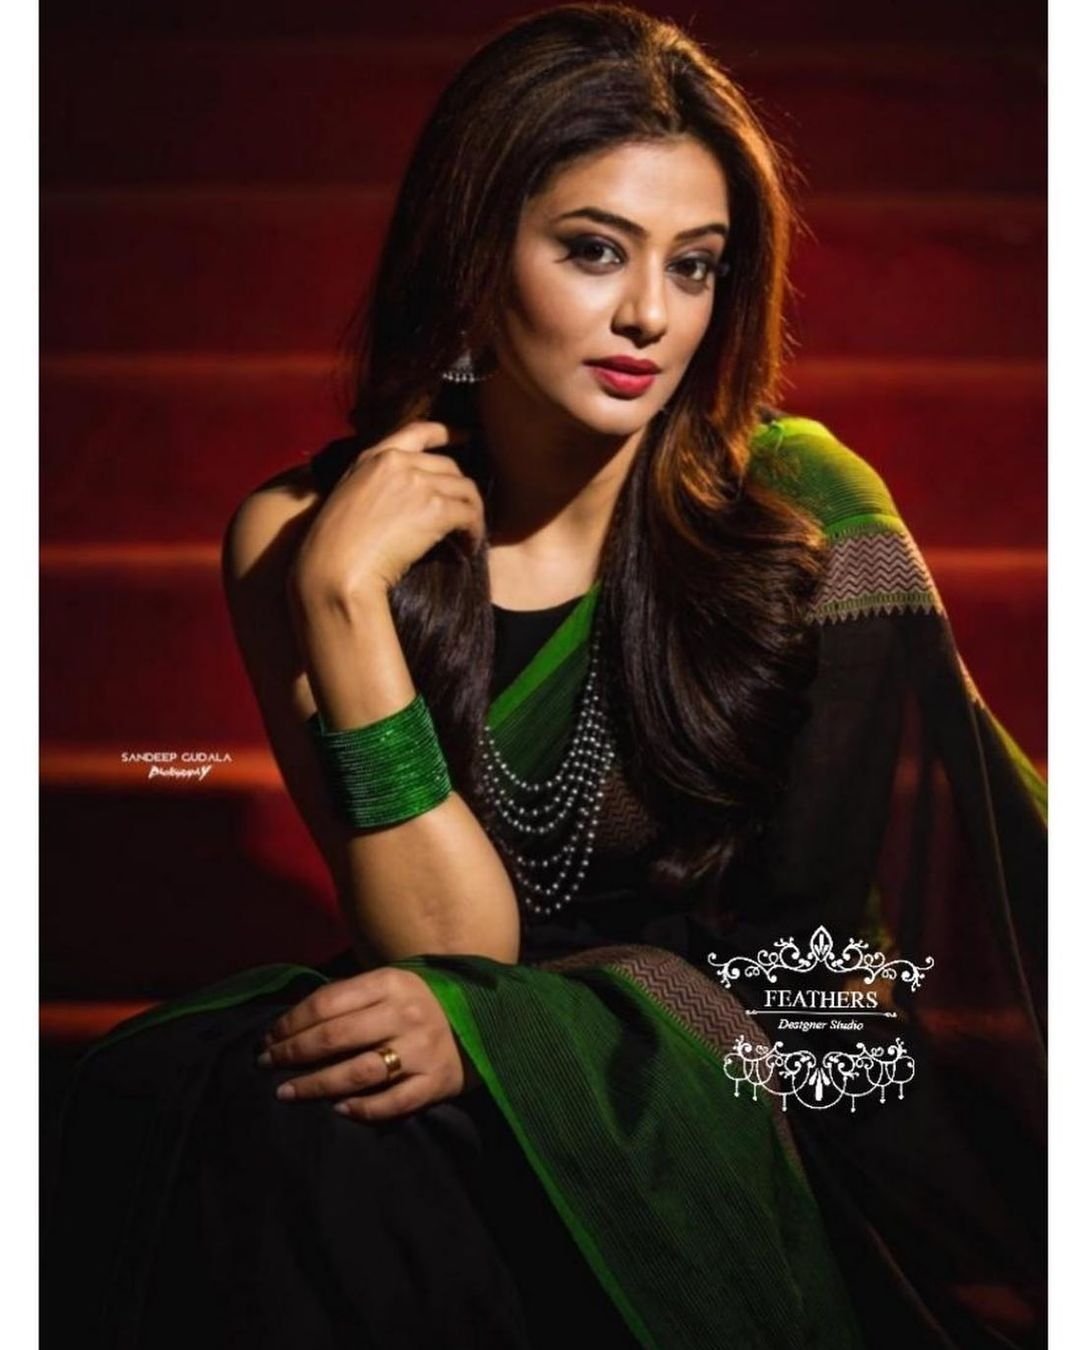 Beautiful Priyamani styled as gorgeous as ever in Feathers Handloom drape saree for Dhee13 kings vs queens. 2021-03-11